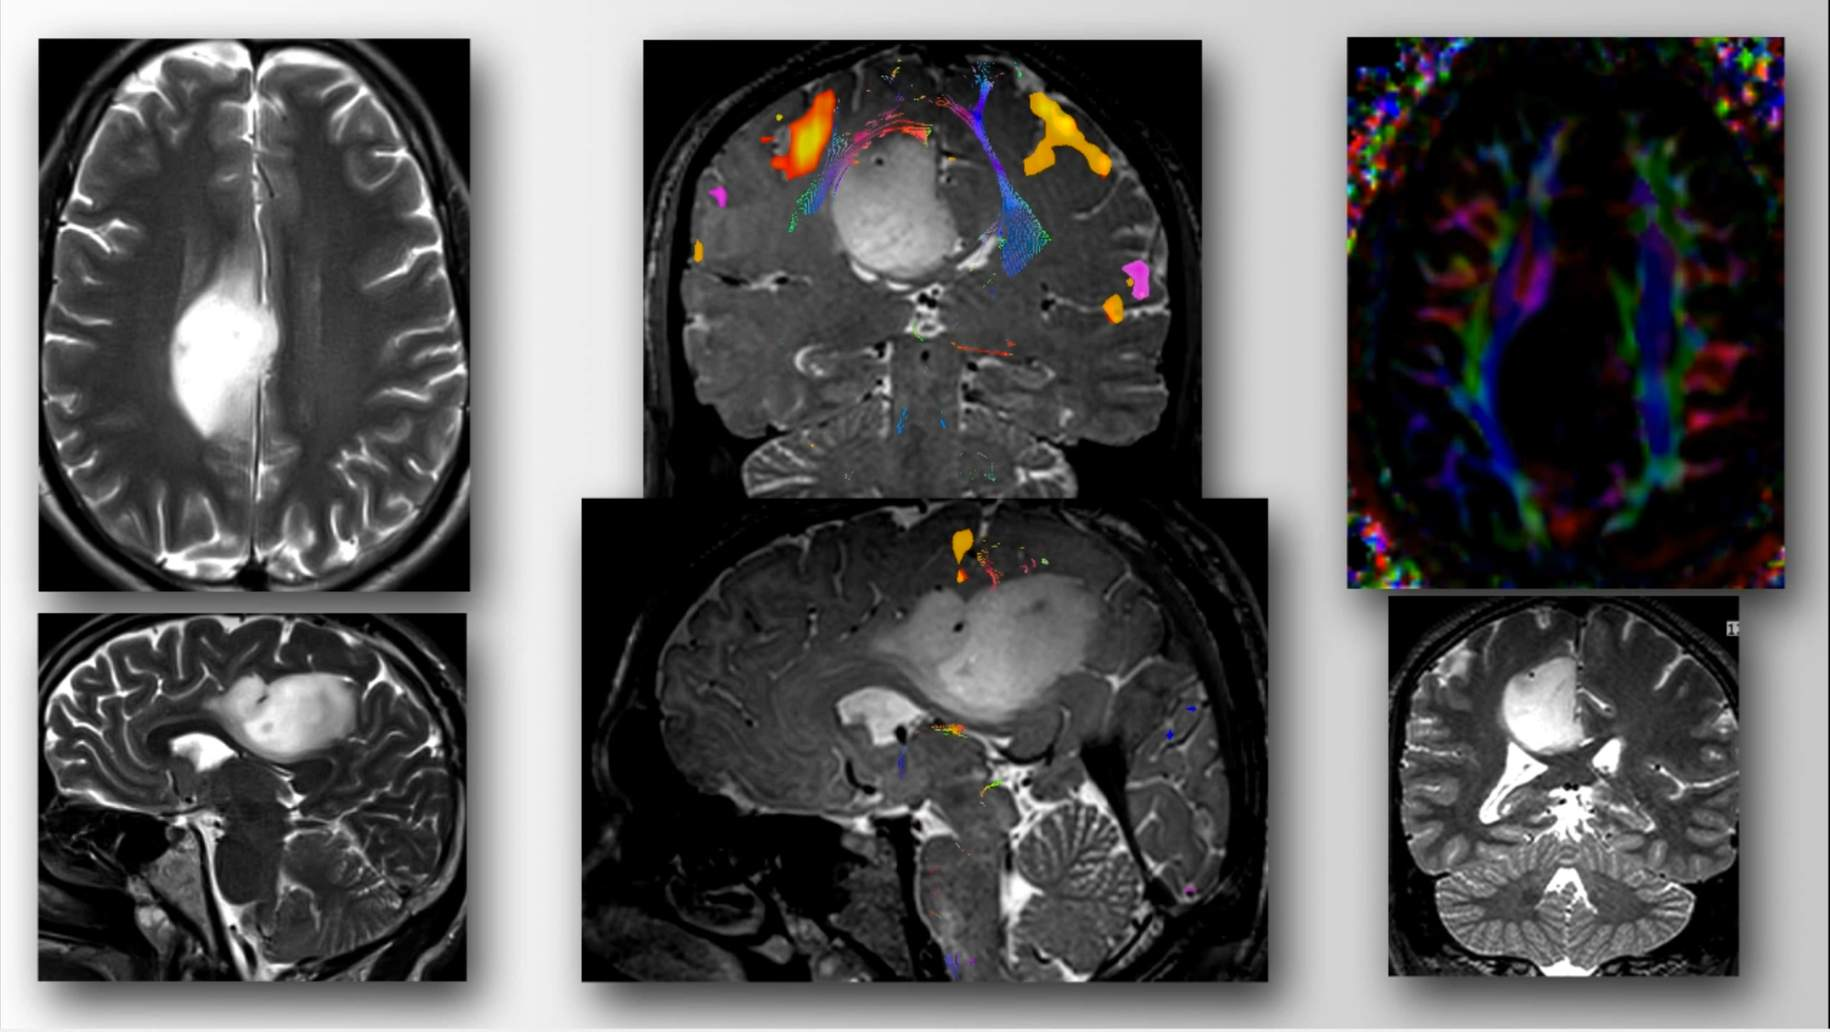 Figure 7: Preoperative images demonstrate a low-grade glial tumor located in the right periatrial region extending to the medial frontal lobe. Middle panel, upper image (coronal) and lower image (sagittal) functional MR images demonstrate the location of the sensorimotor cortex draped over the upper pole of the tumor. Diffusion tensor imaging (right upper image) reveals displacement of motor fibers by the tumor.